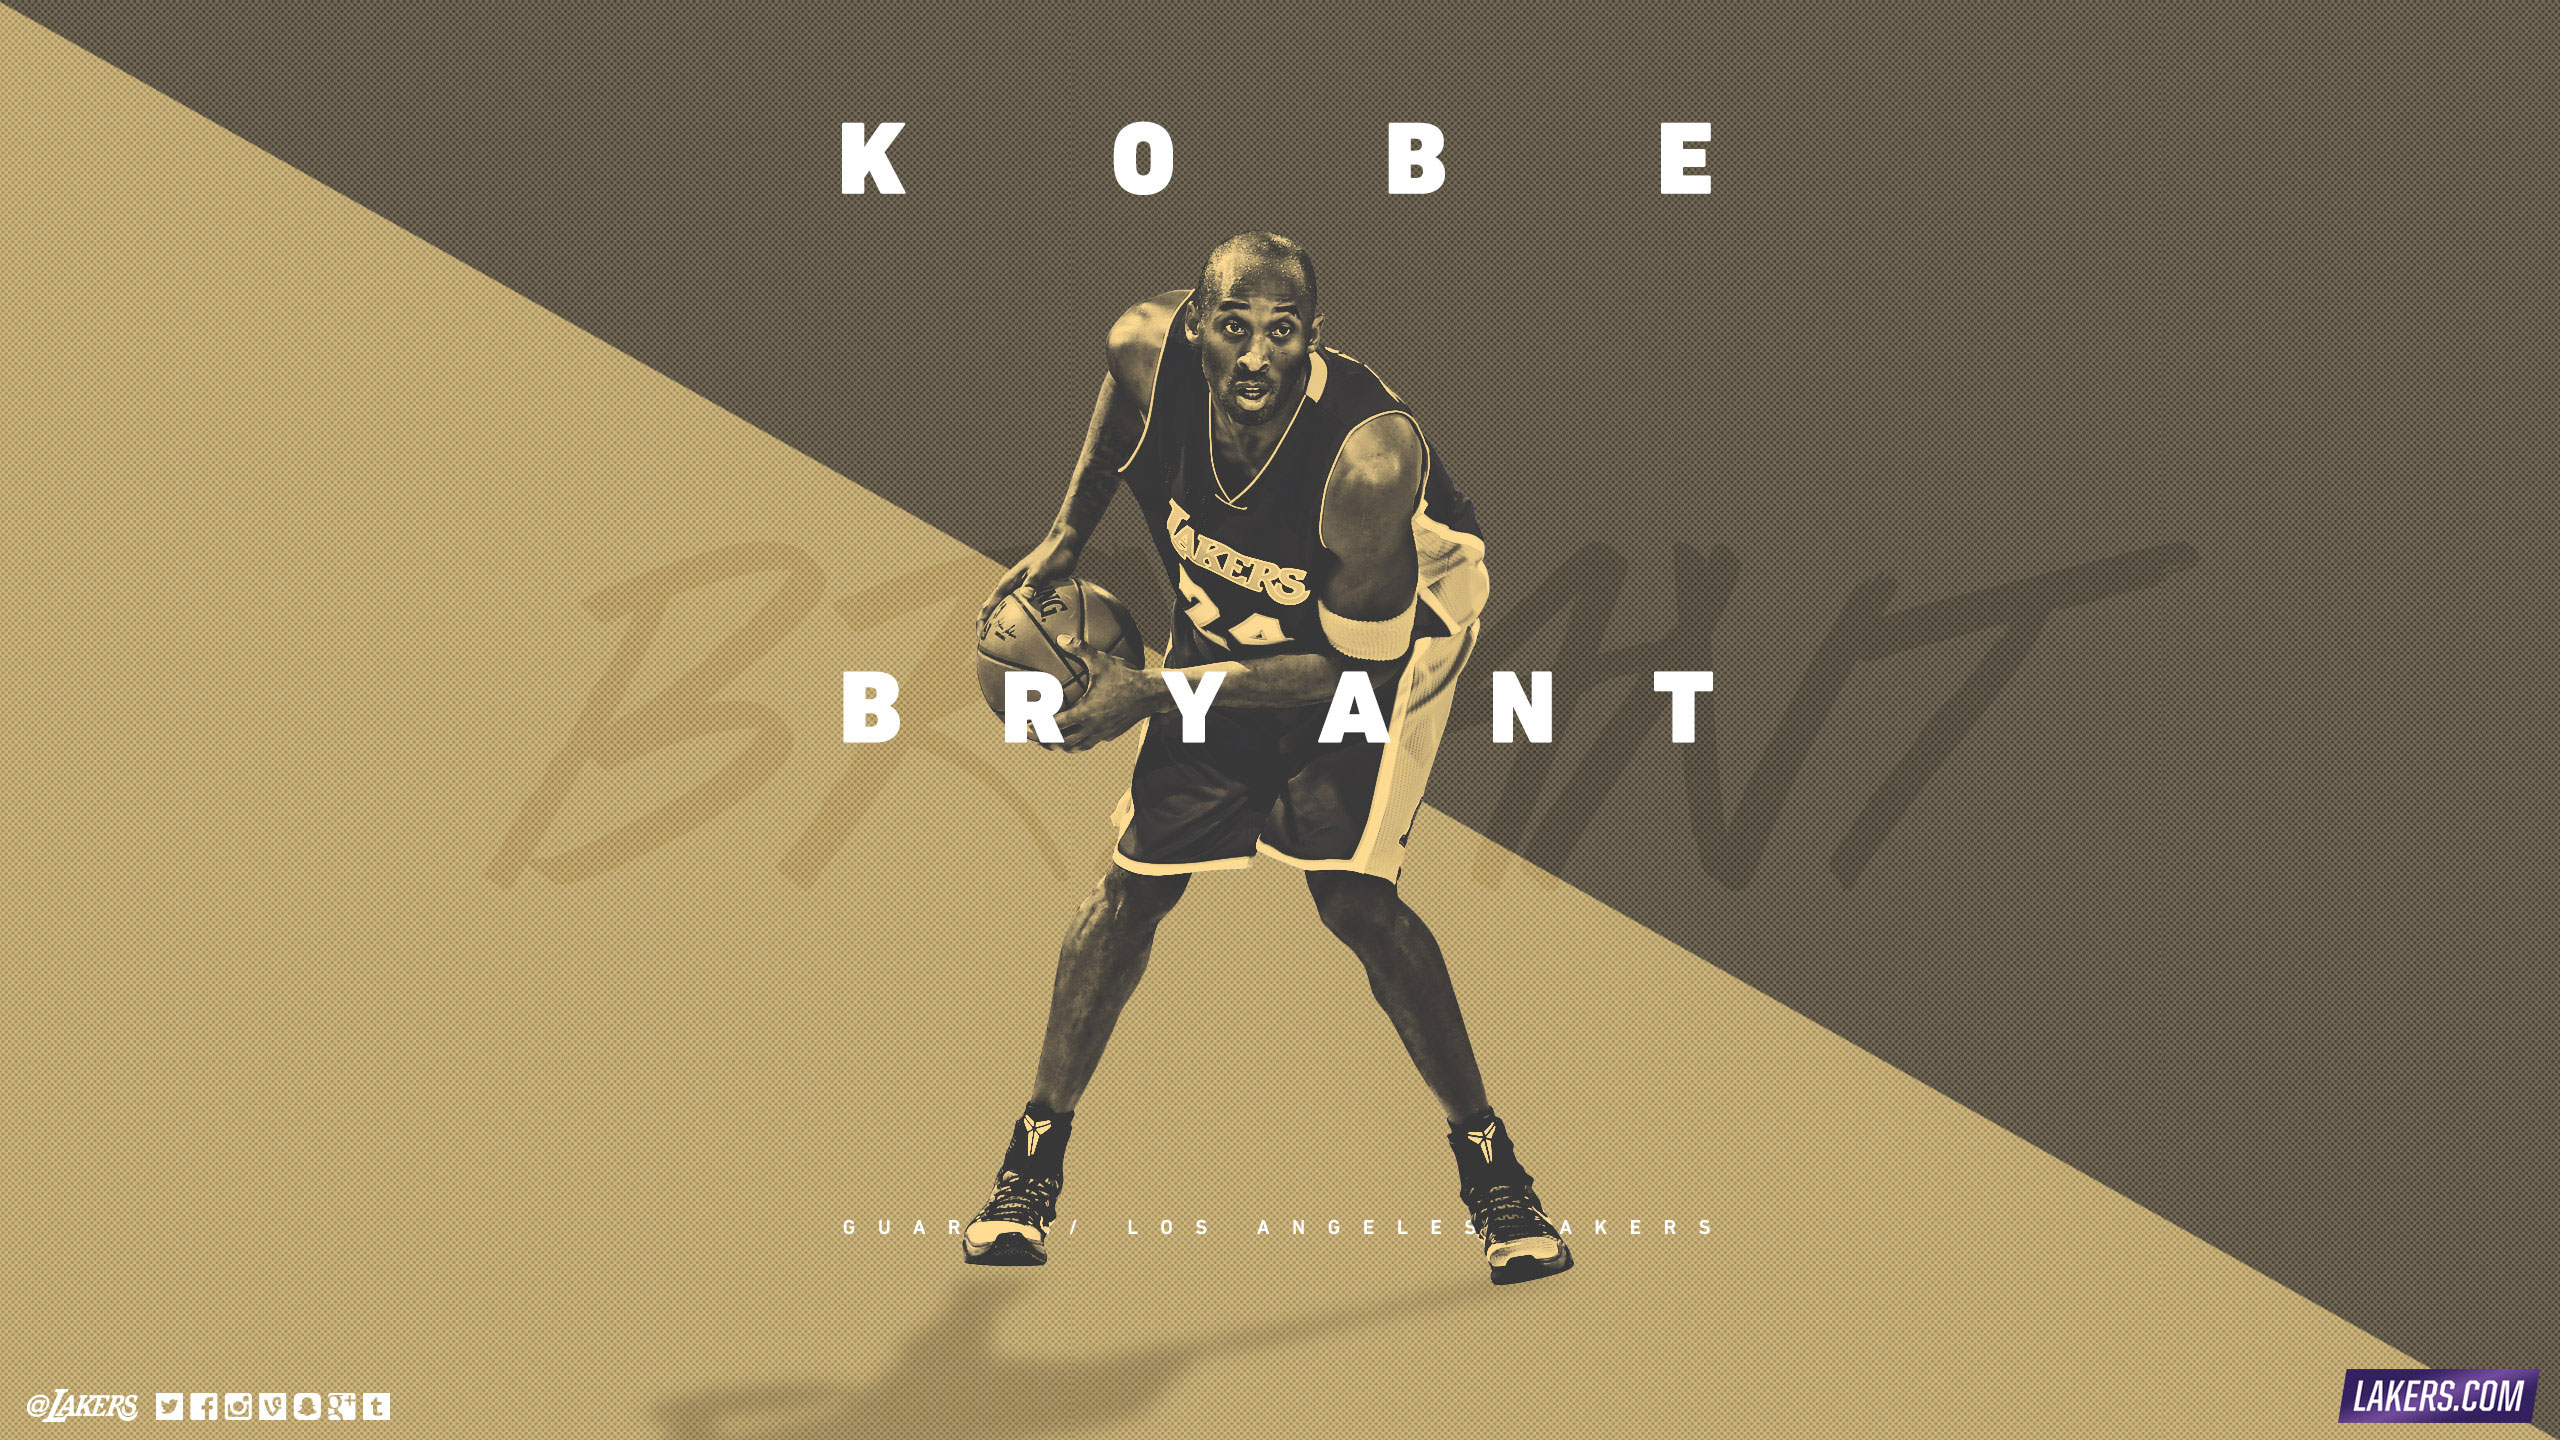 kobe bryant wallpaper 2016 wallpapersafari